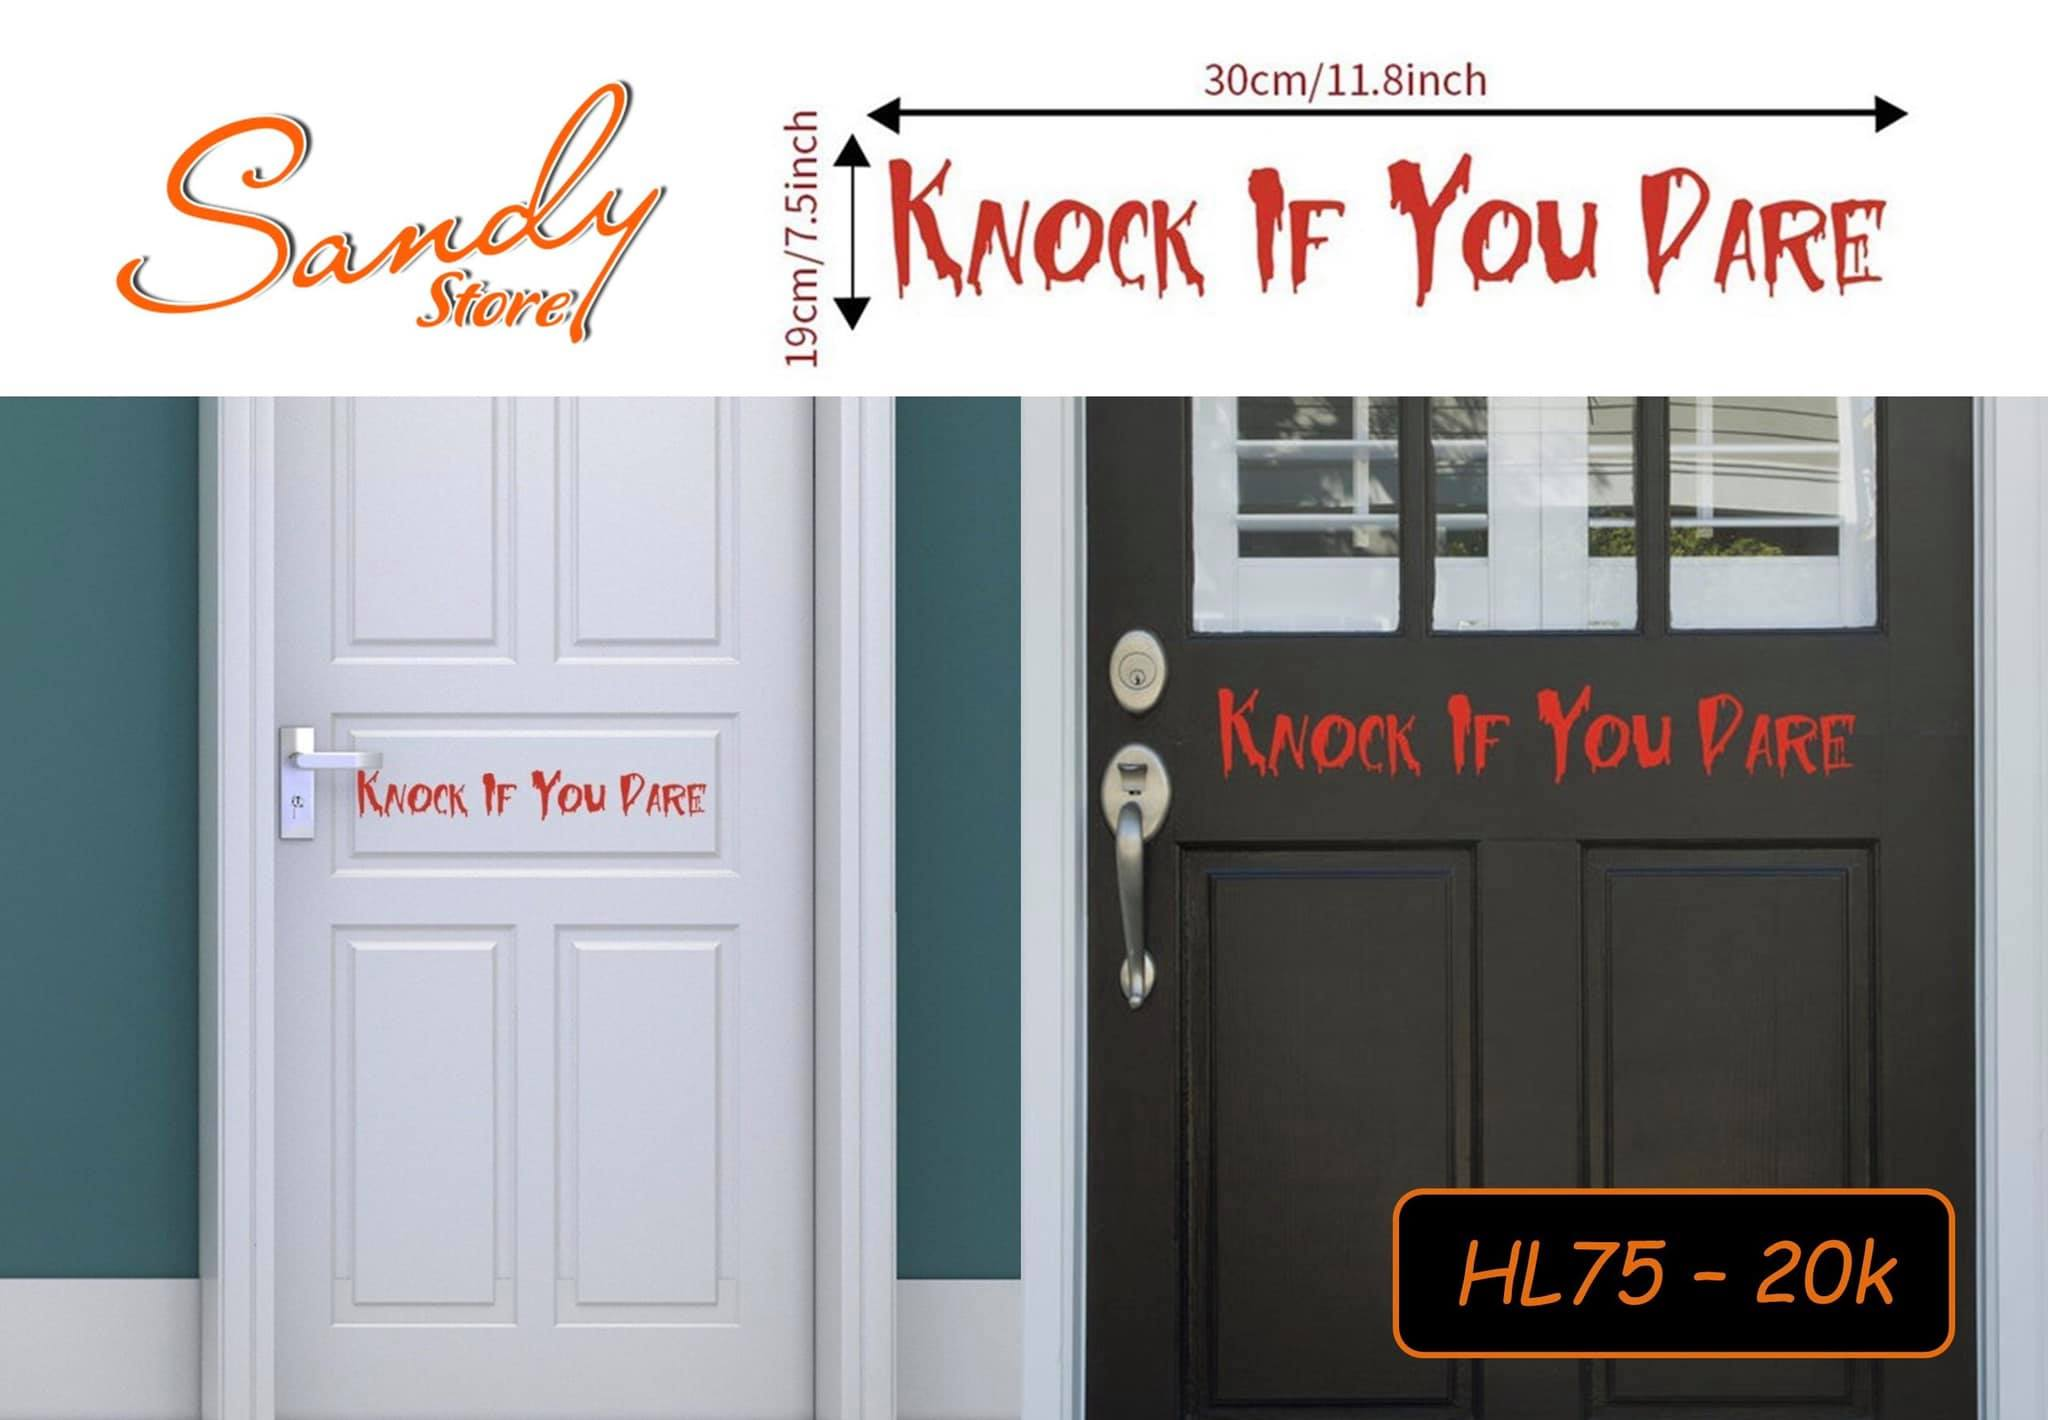 HL75 - Decal Knock If You Dare